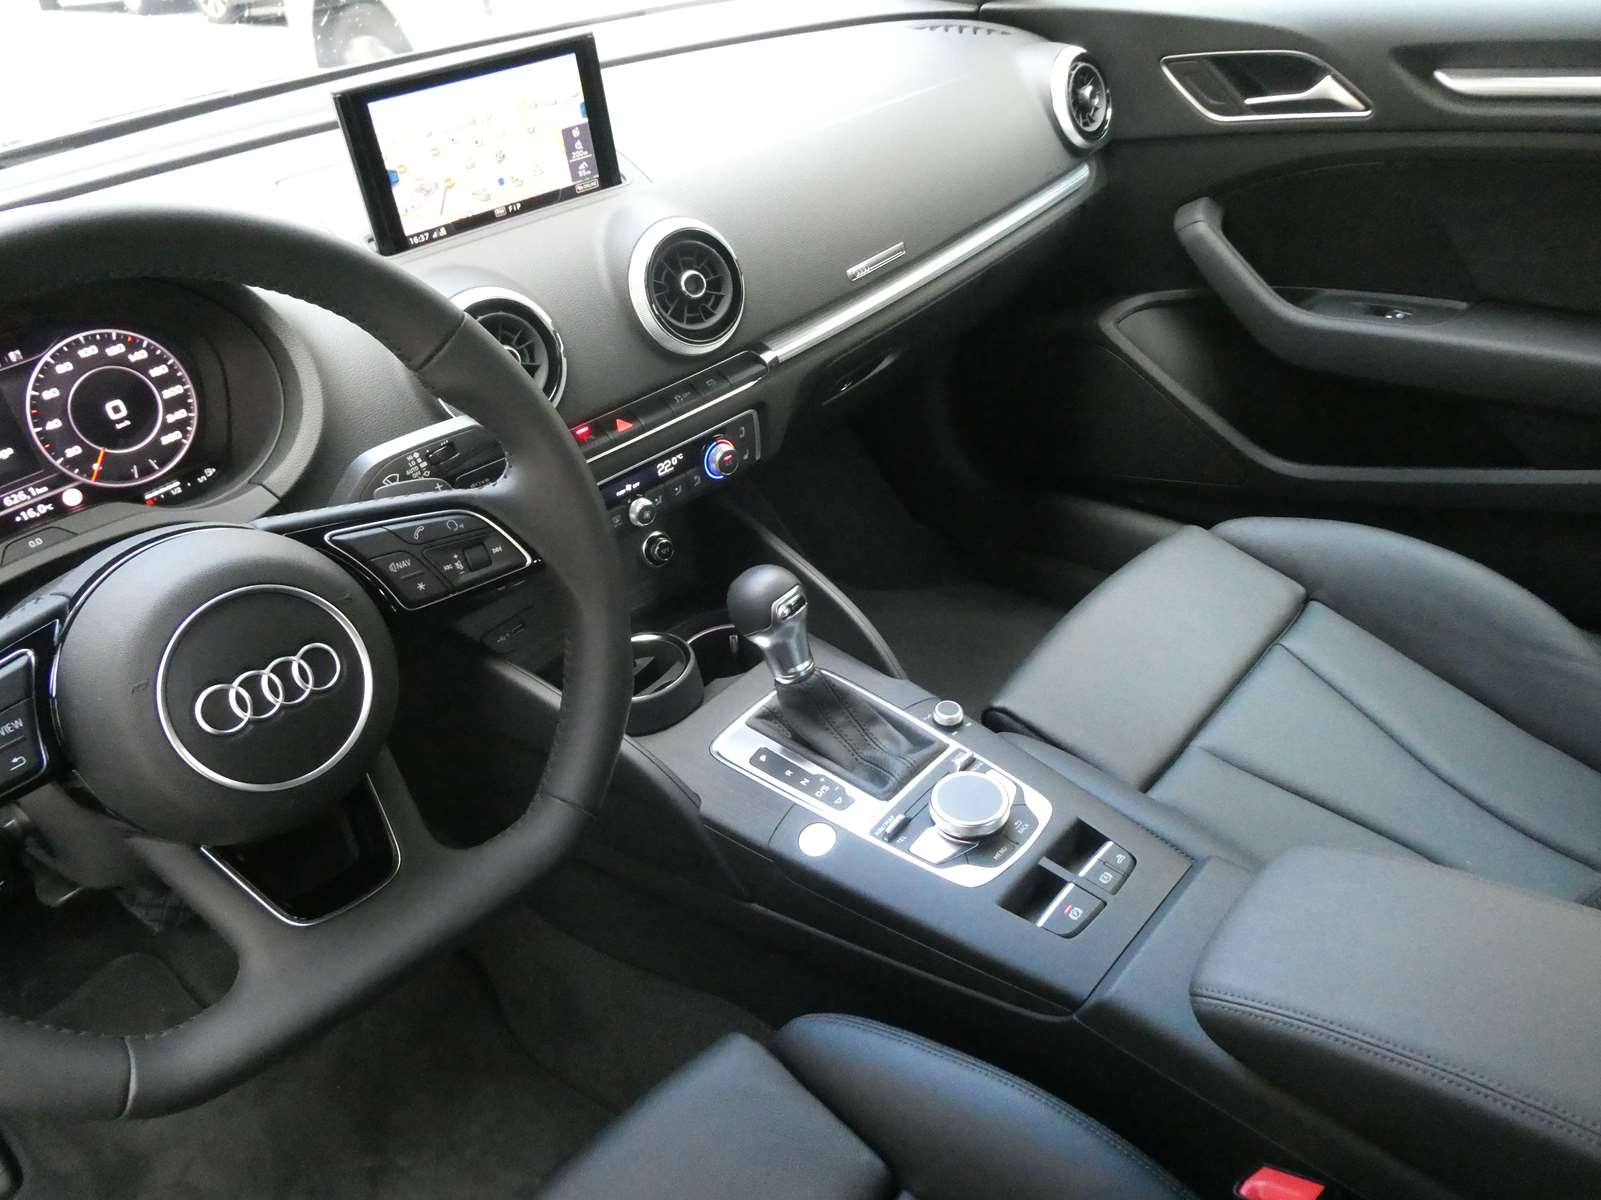 Audi A3 (2) cabriolet 35 TFSI 150 Design luxe S tronic 7 20